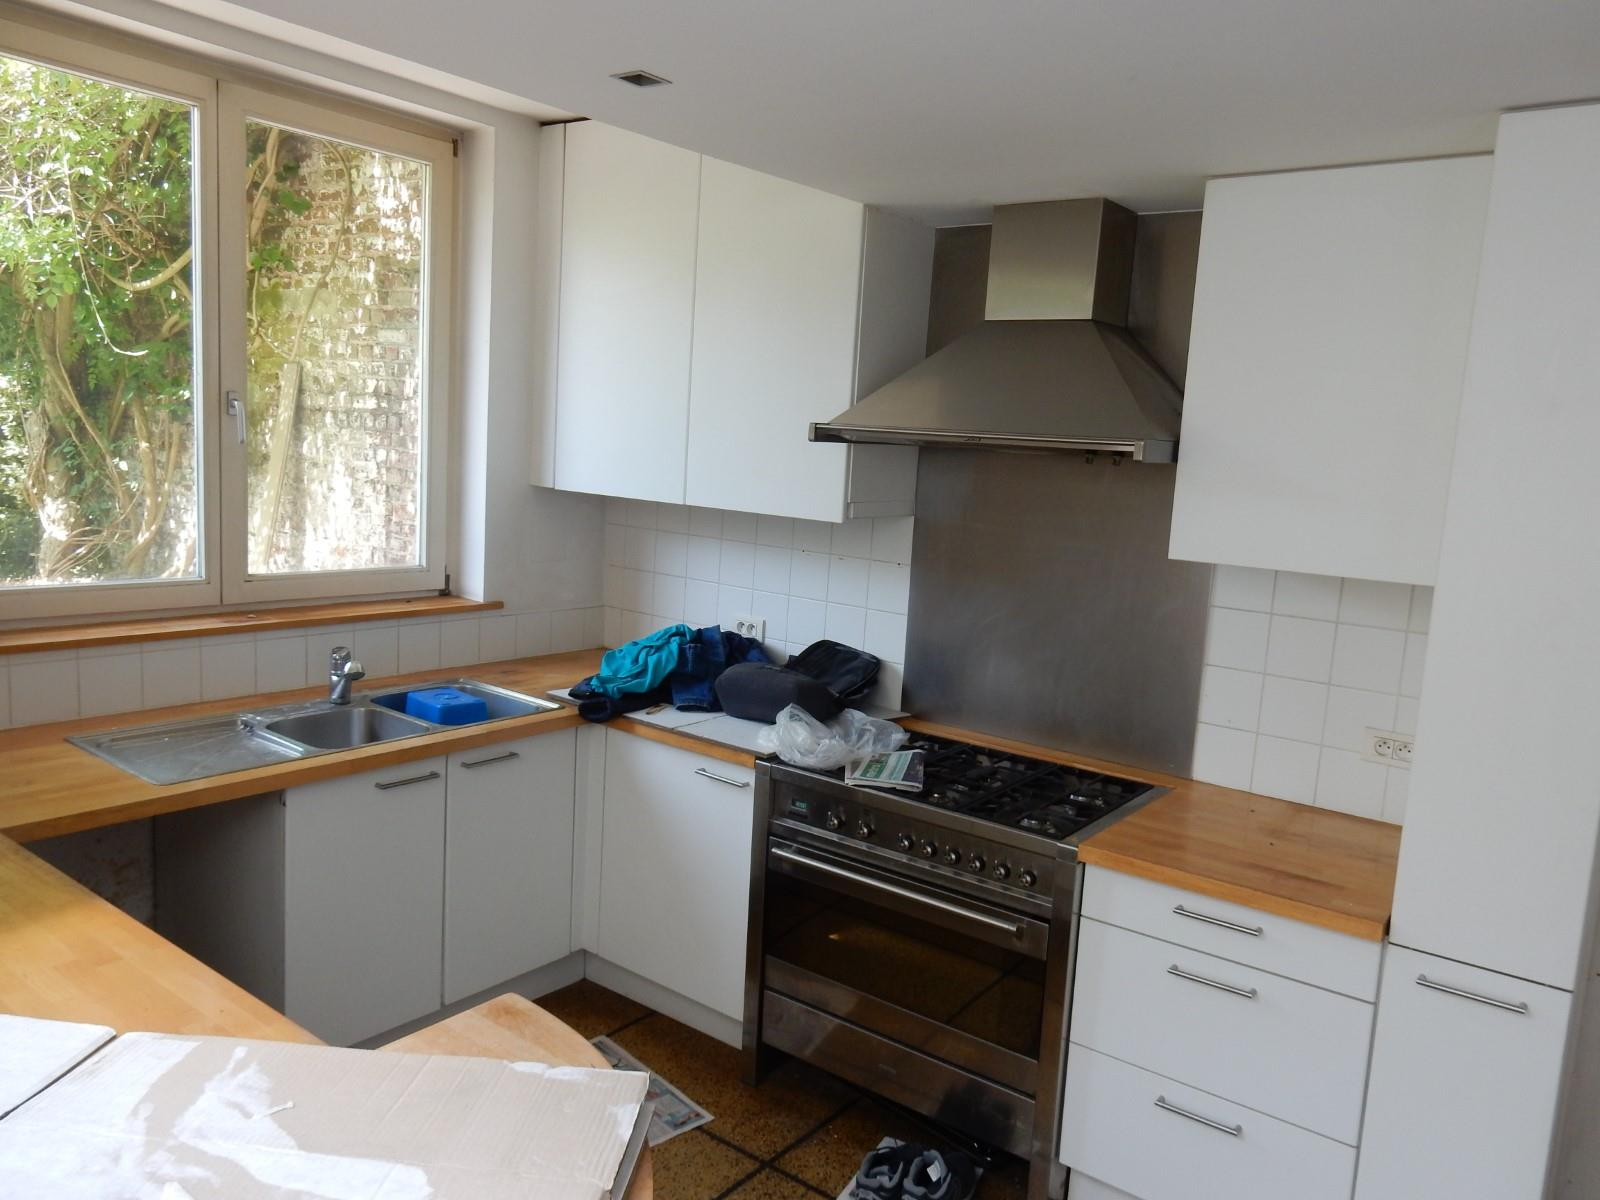 House - Uccle - #3450414-1